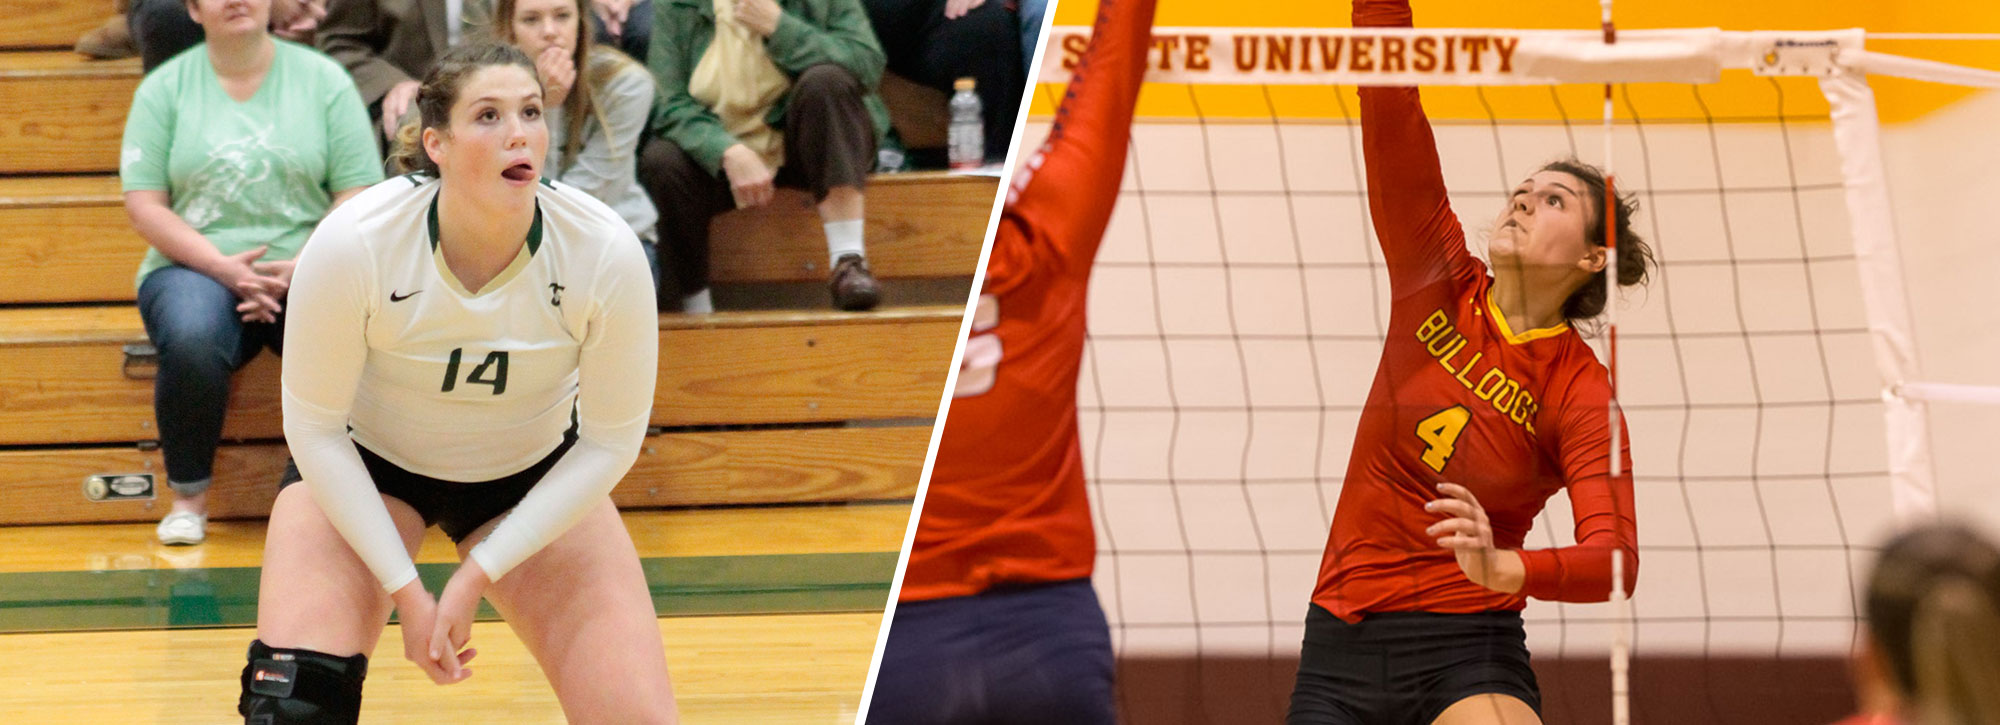 GLIAC Volleyball Players of the Week - Week 10